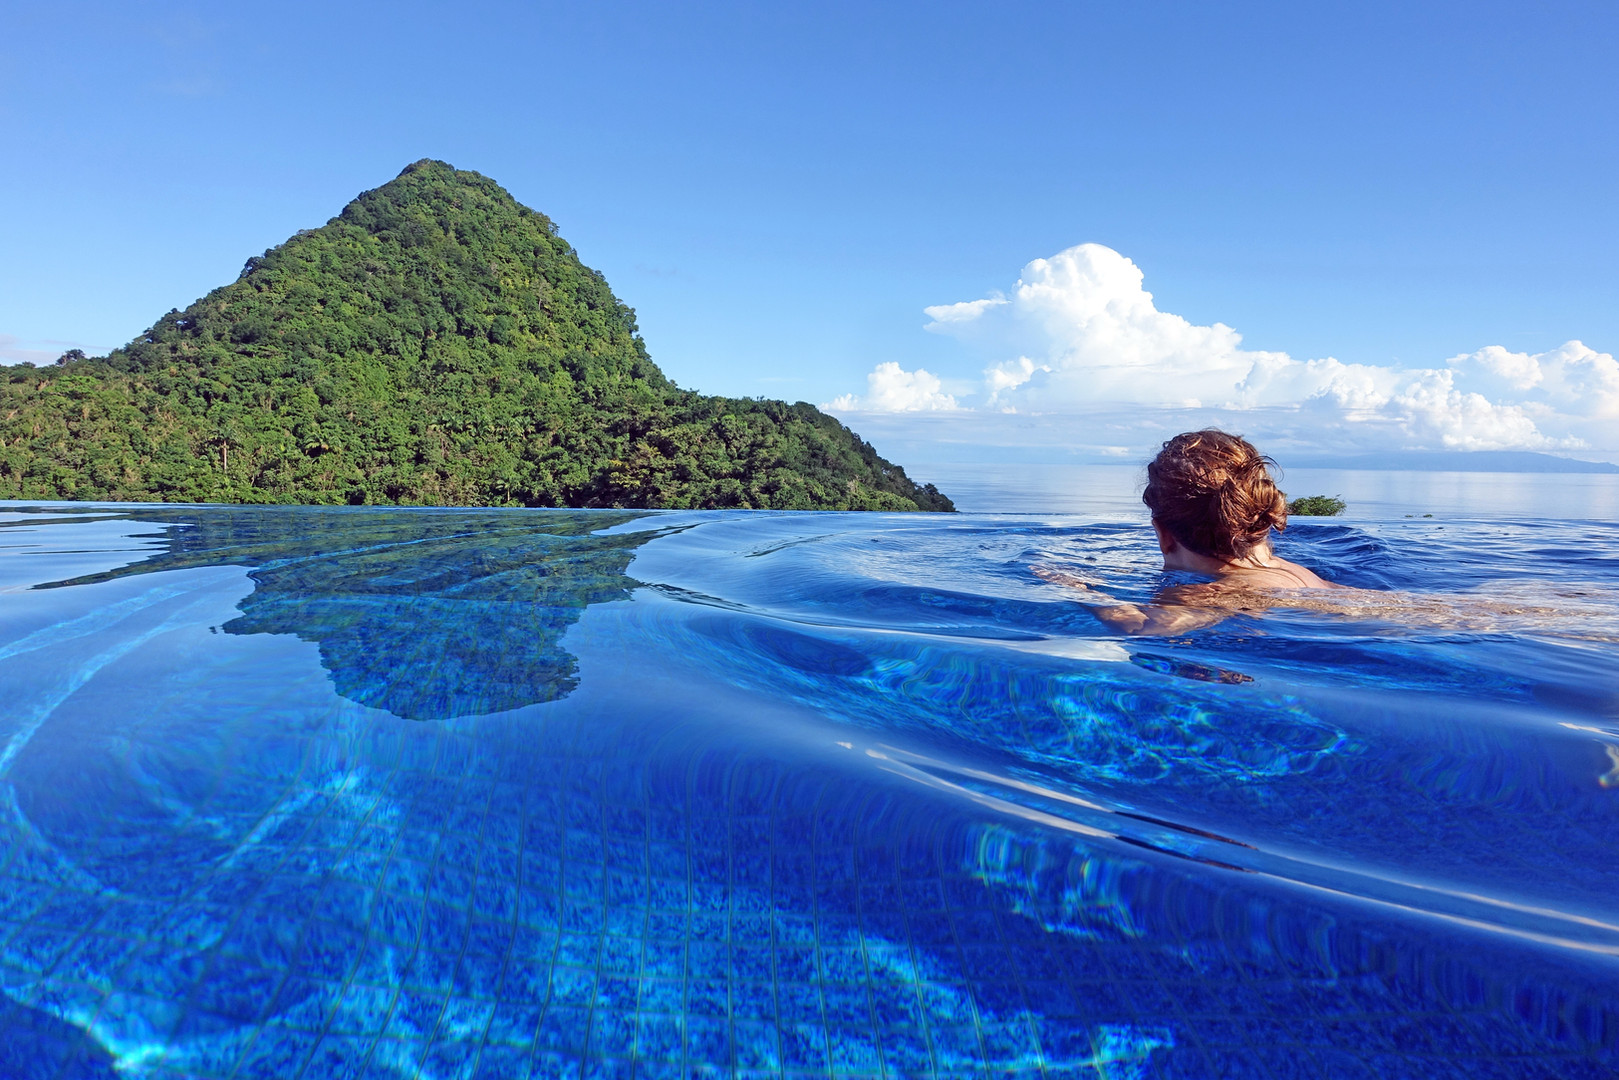 Second common pool, overlooking Morne Fou